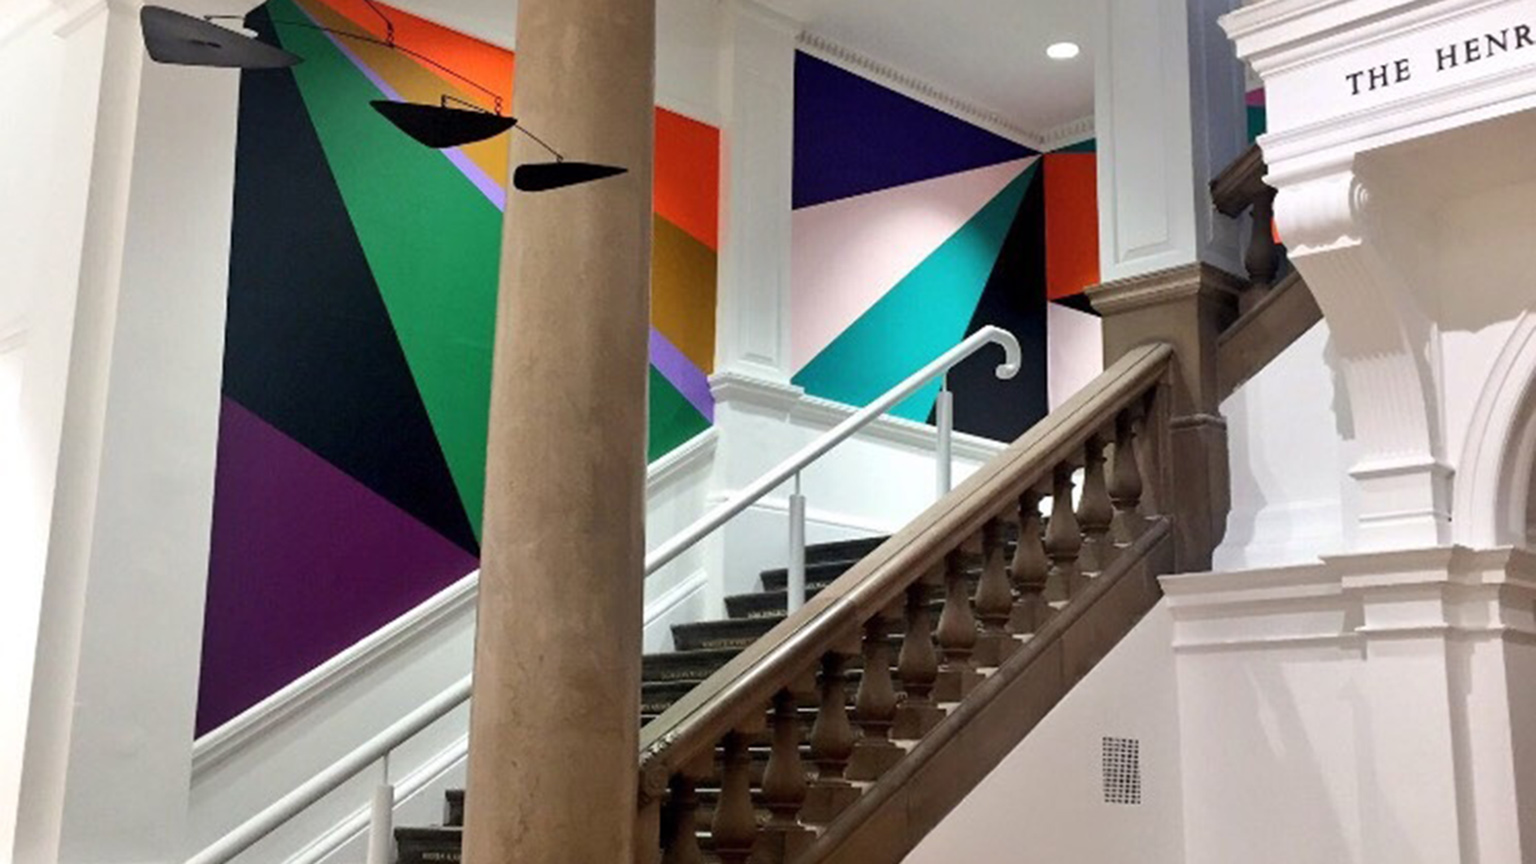 Staircase with Lothar Götz wall painting, Leeds Art Gallery